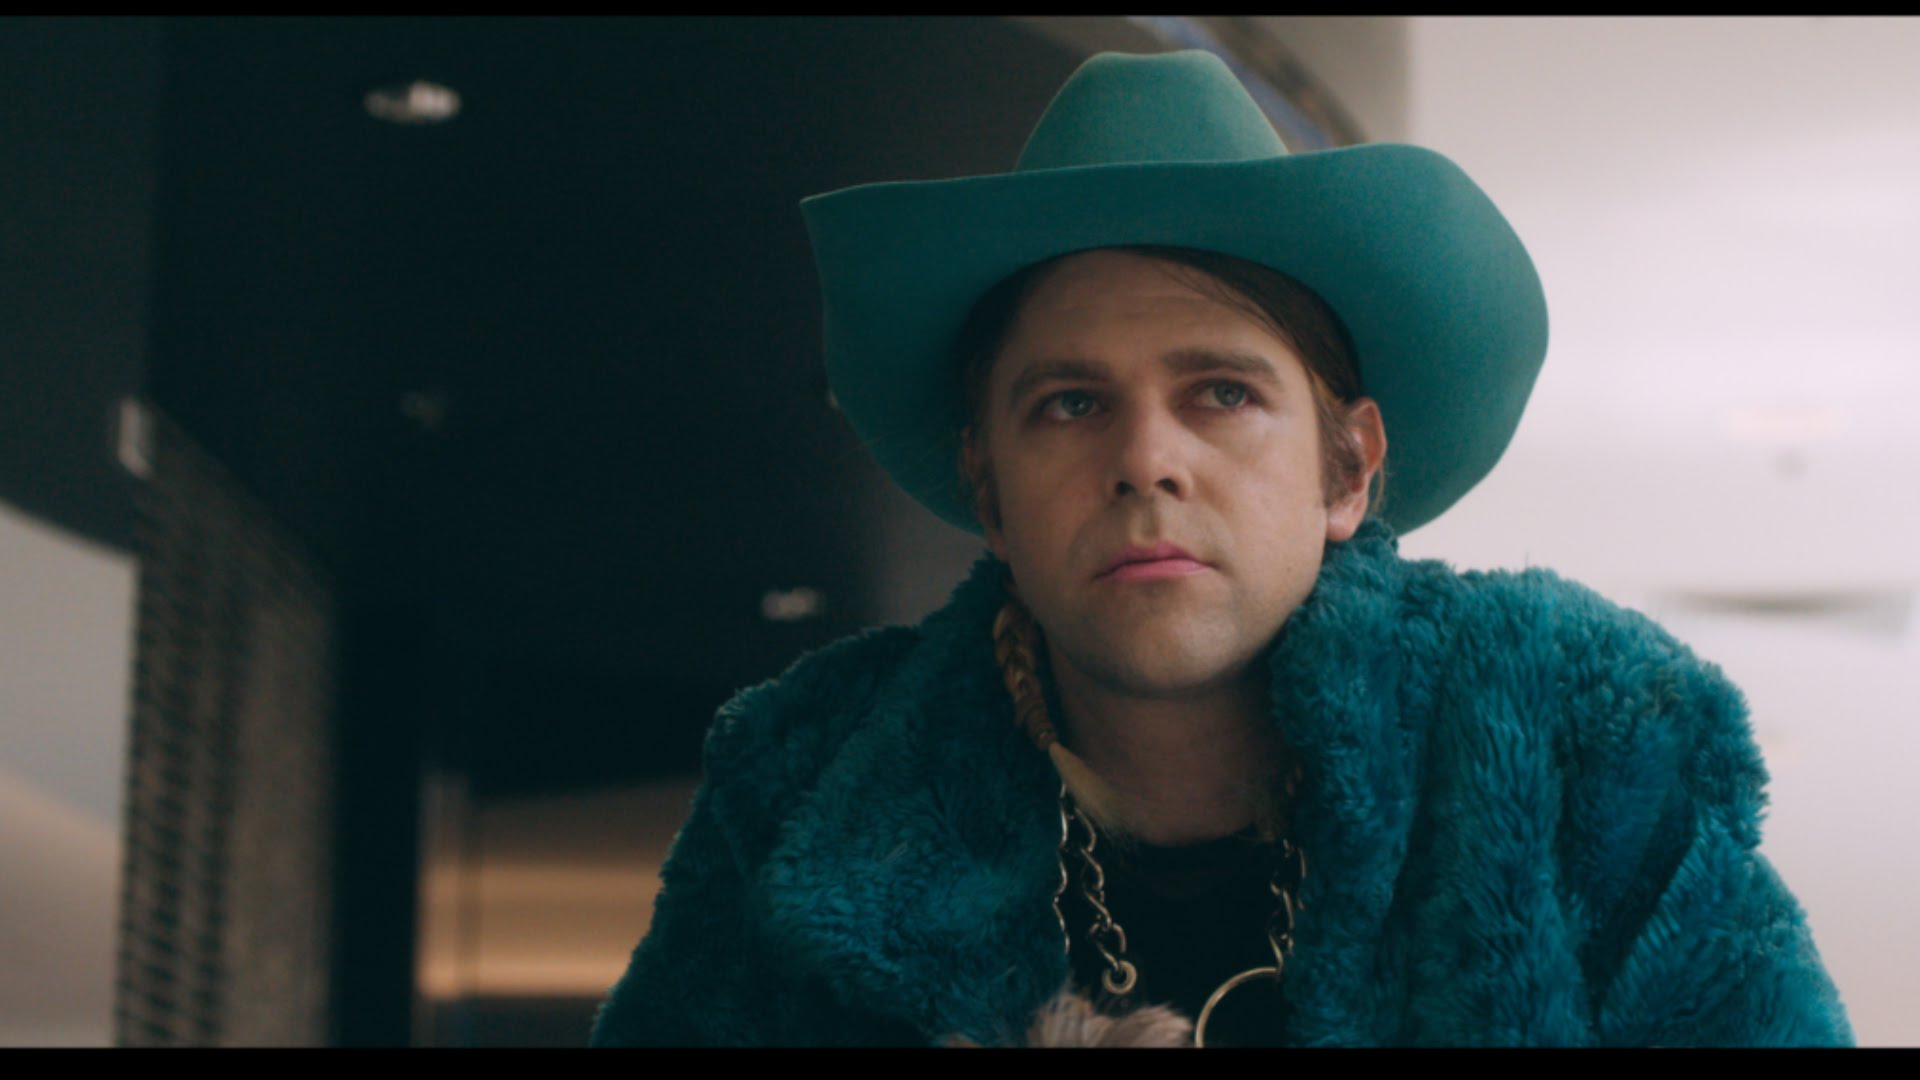 Ariel Pink airs 'Put Your Number In My Phone' video, confirms live dates